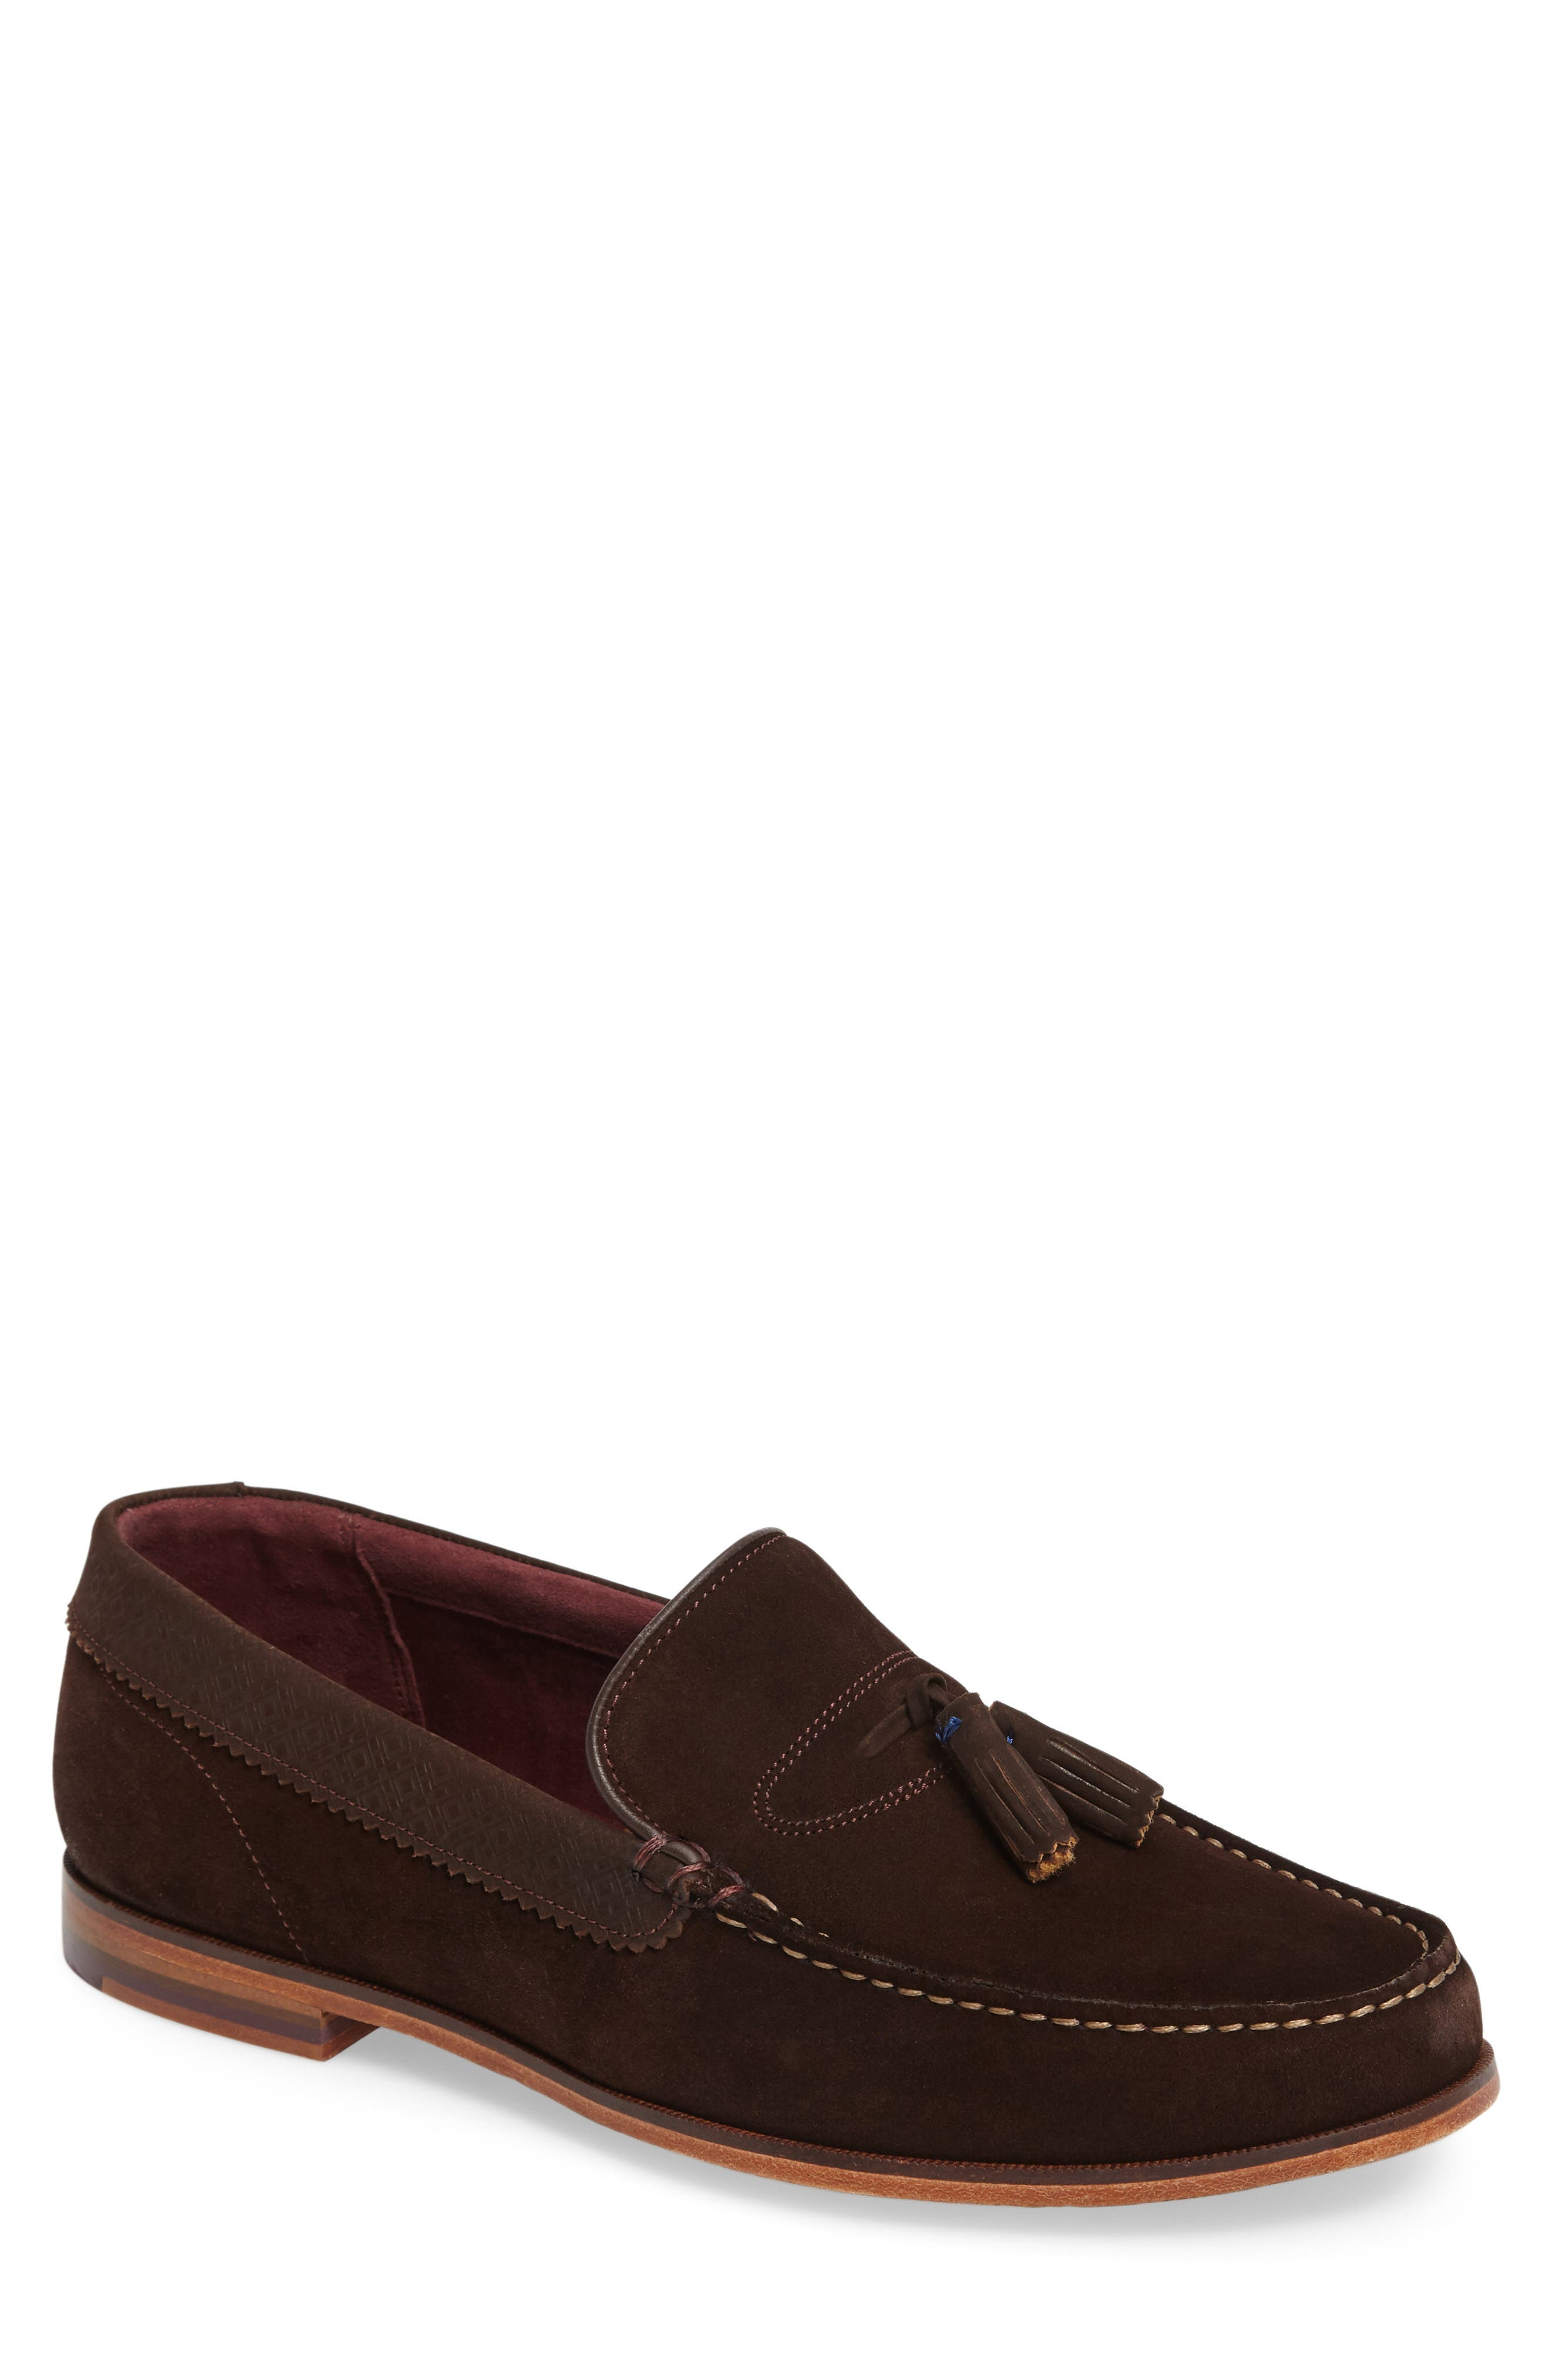 Dougge Tassel Loafer,                             Main thumbnail 1, color,                             Brown Suede